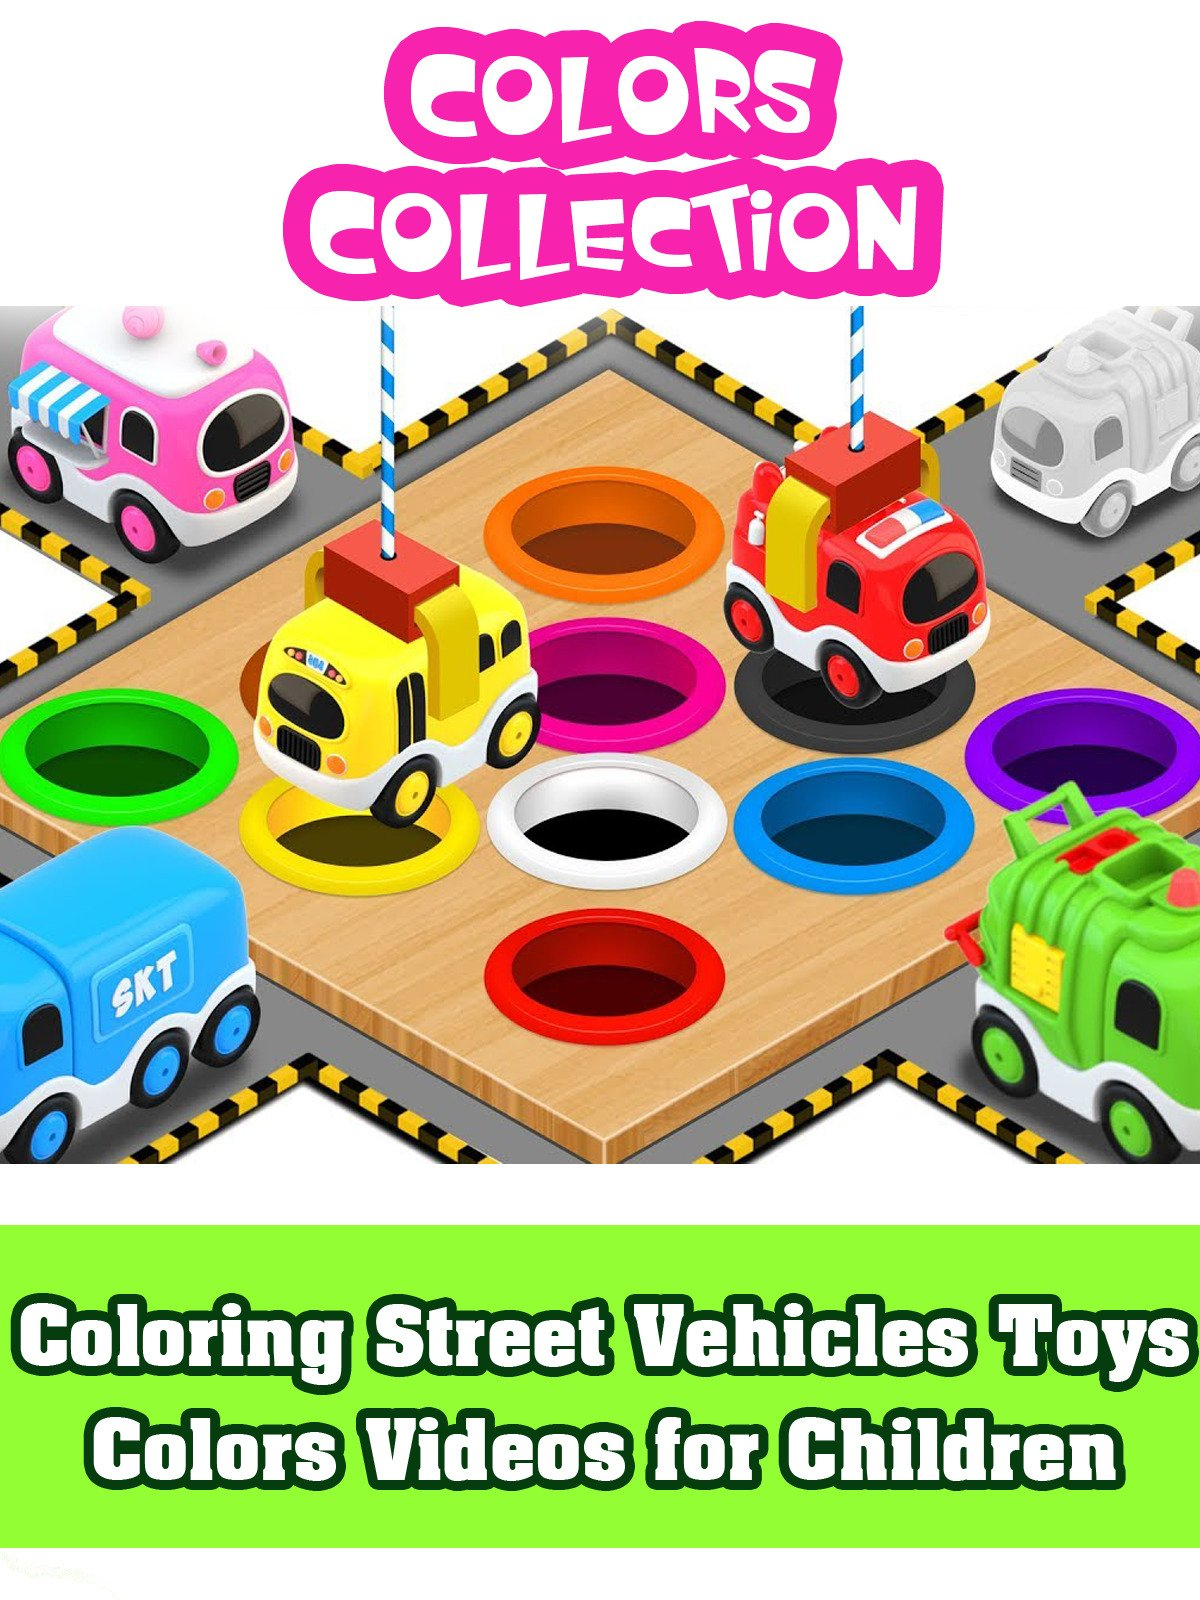 Coloring Street Vehicles Toys